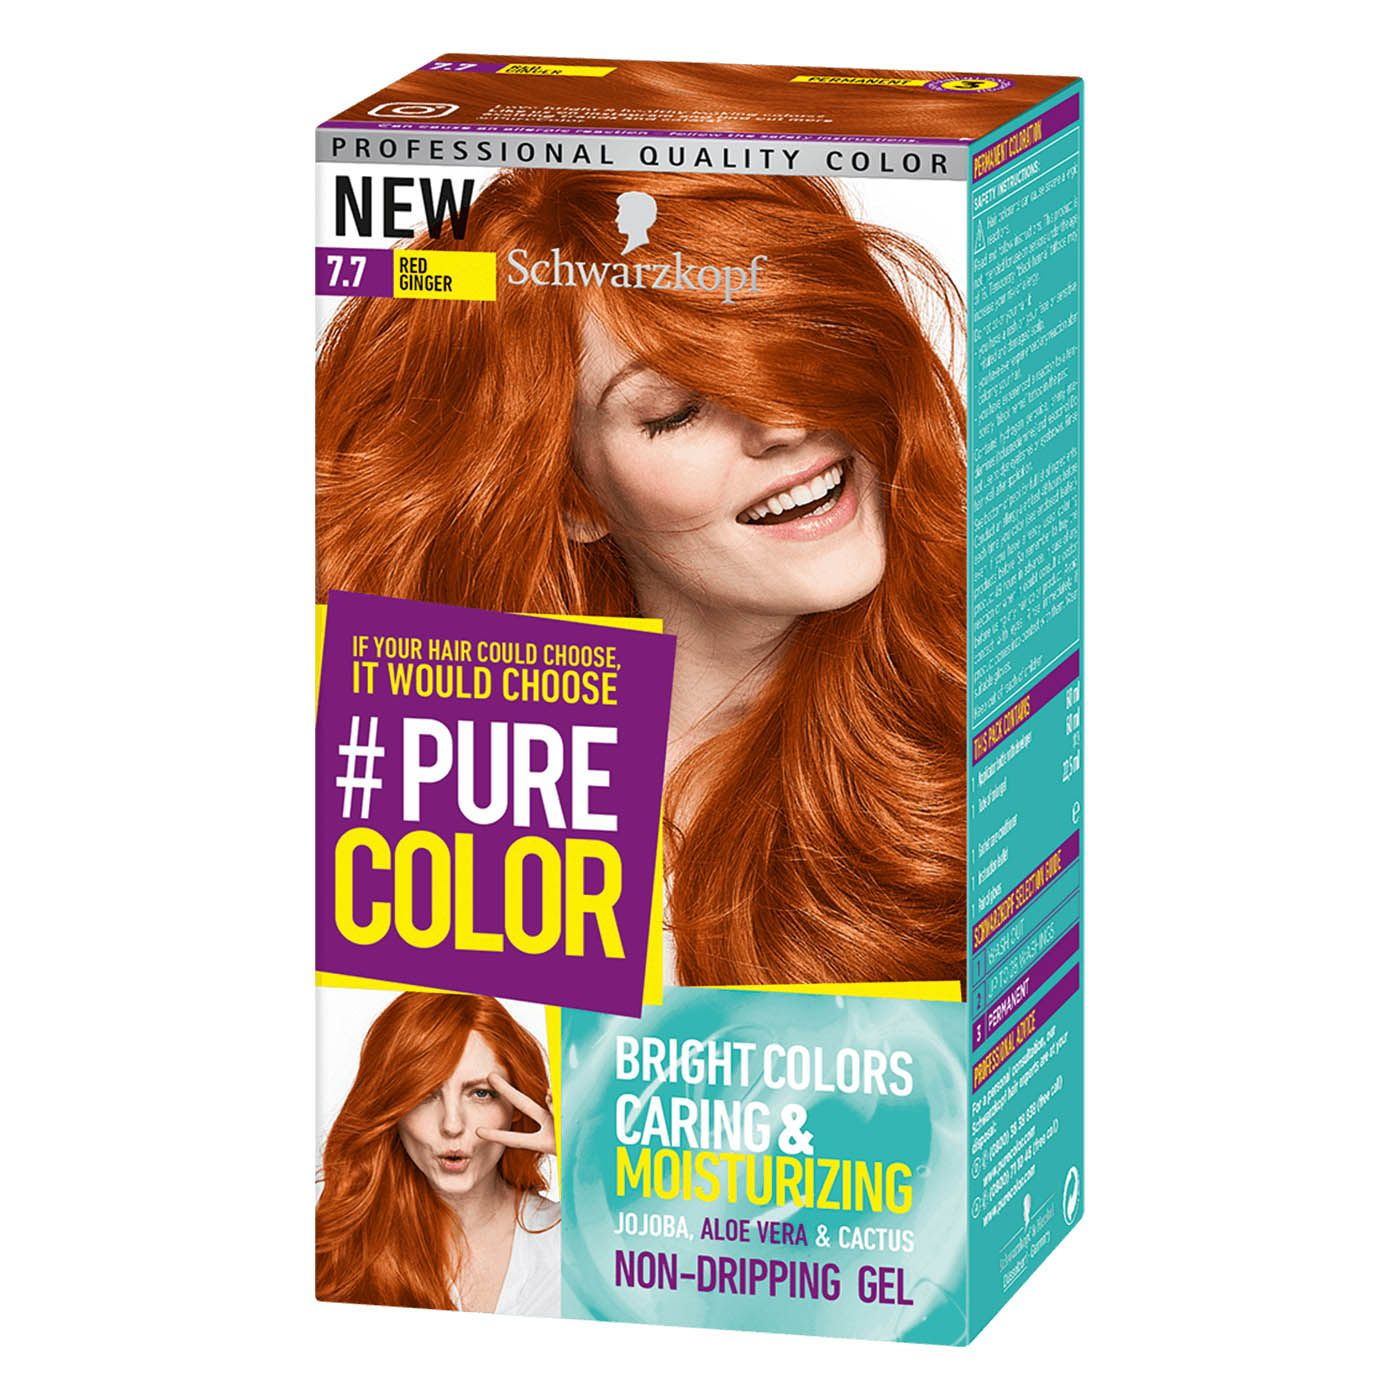 Schwarzkopf Pure Color 7 7 Red Ginger Permanent Gel Coloration